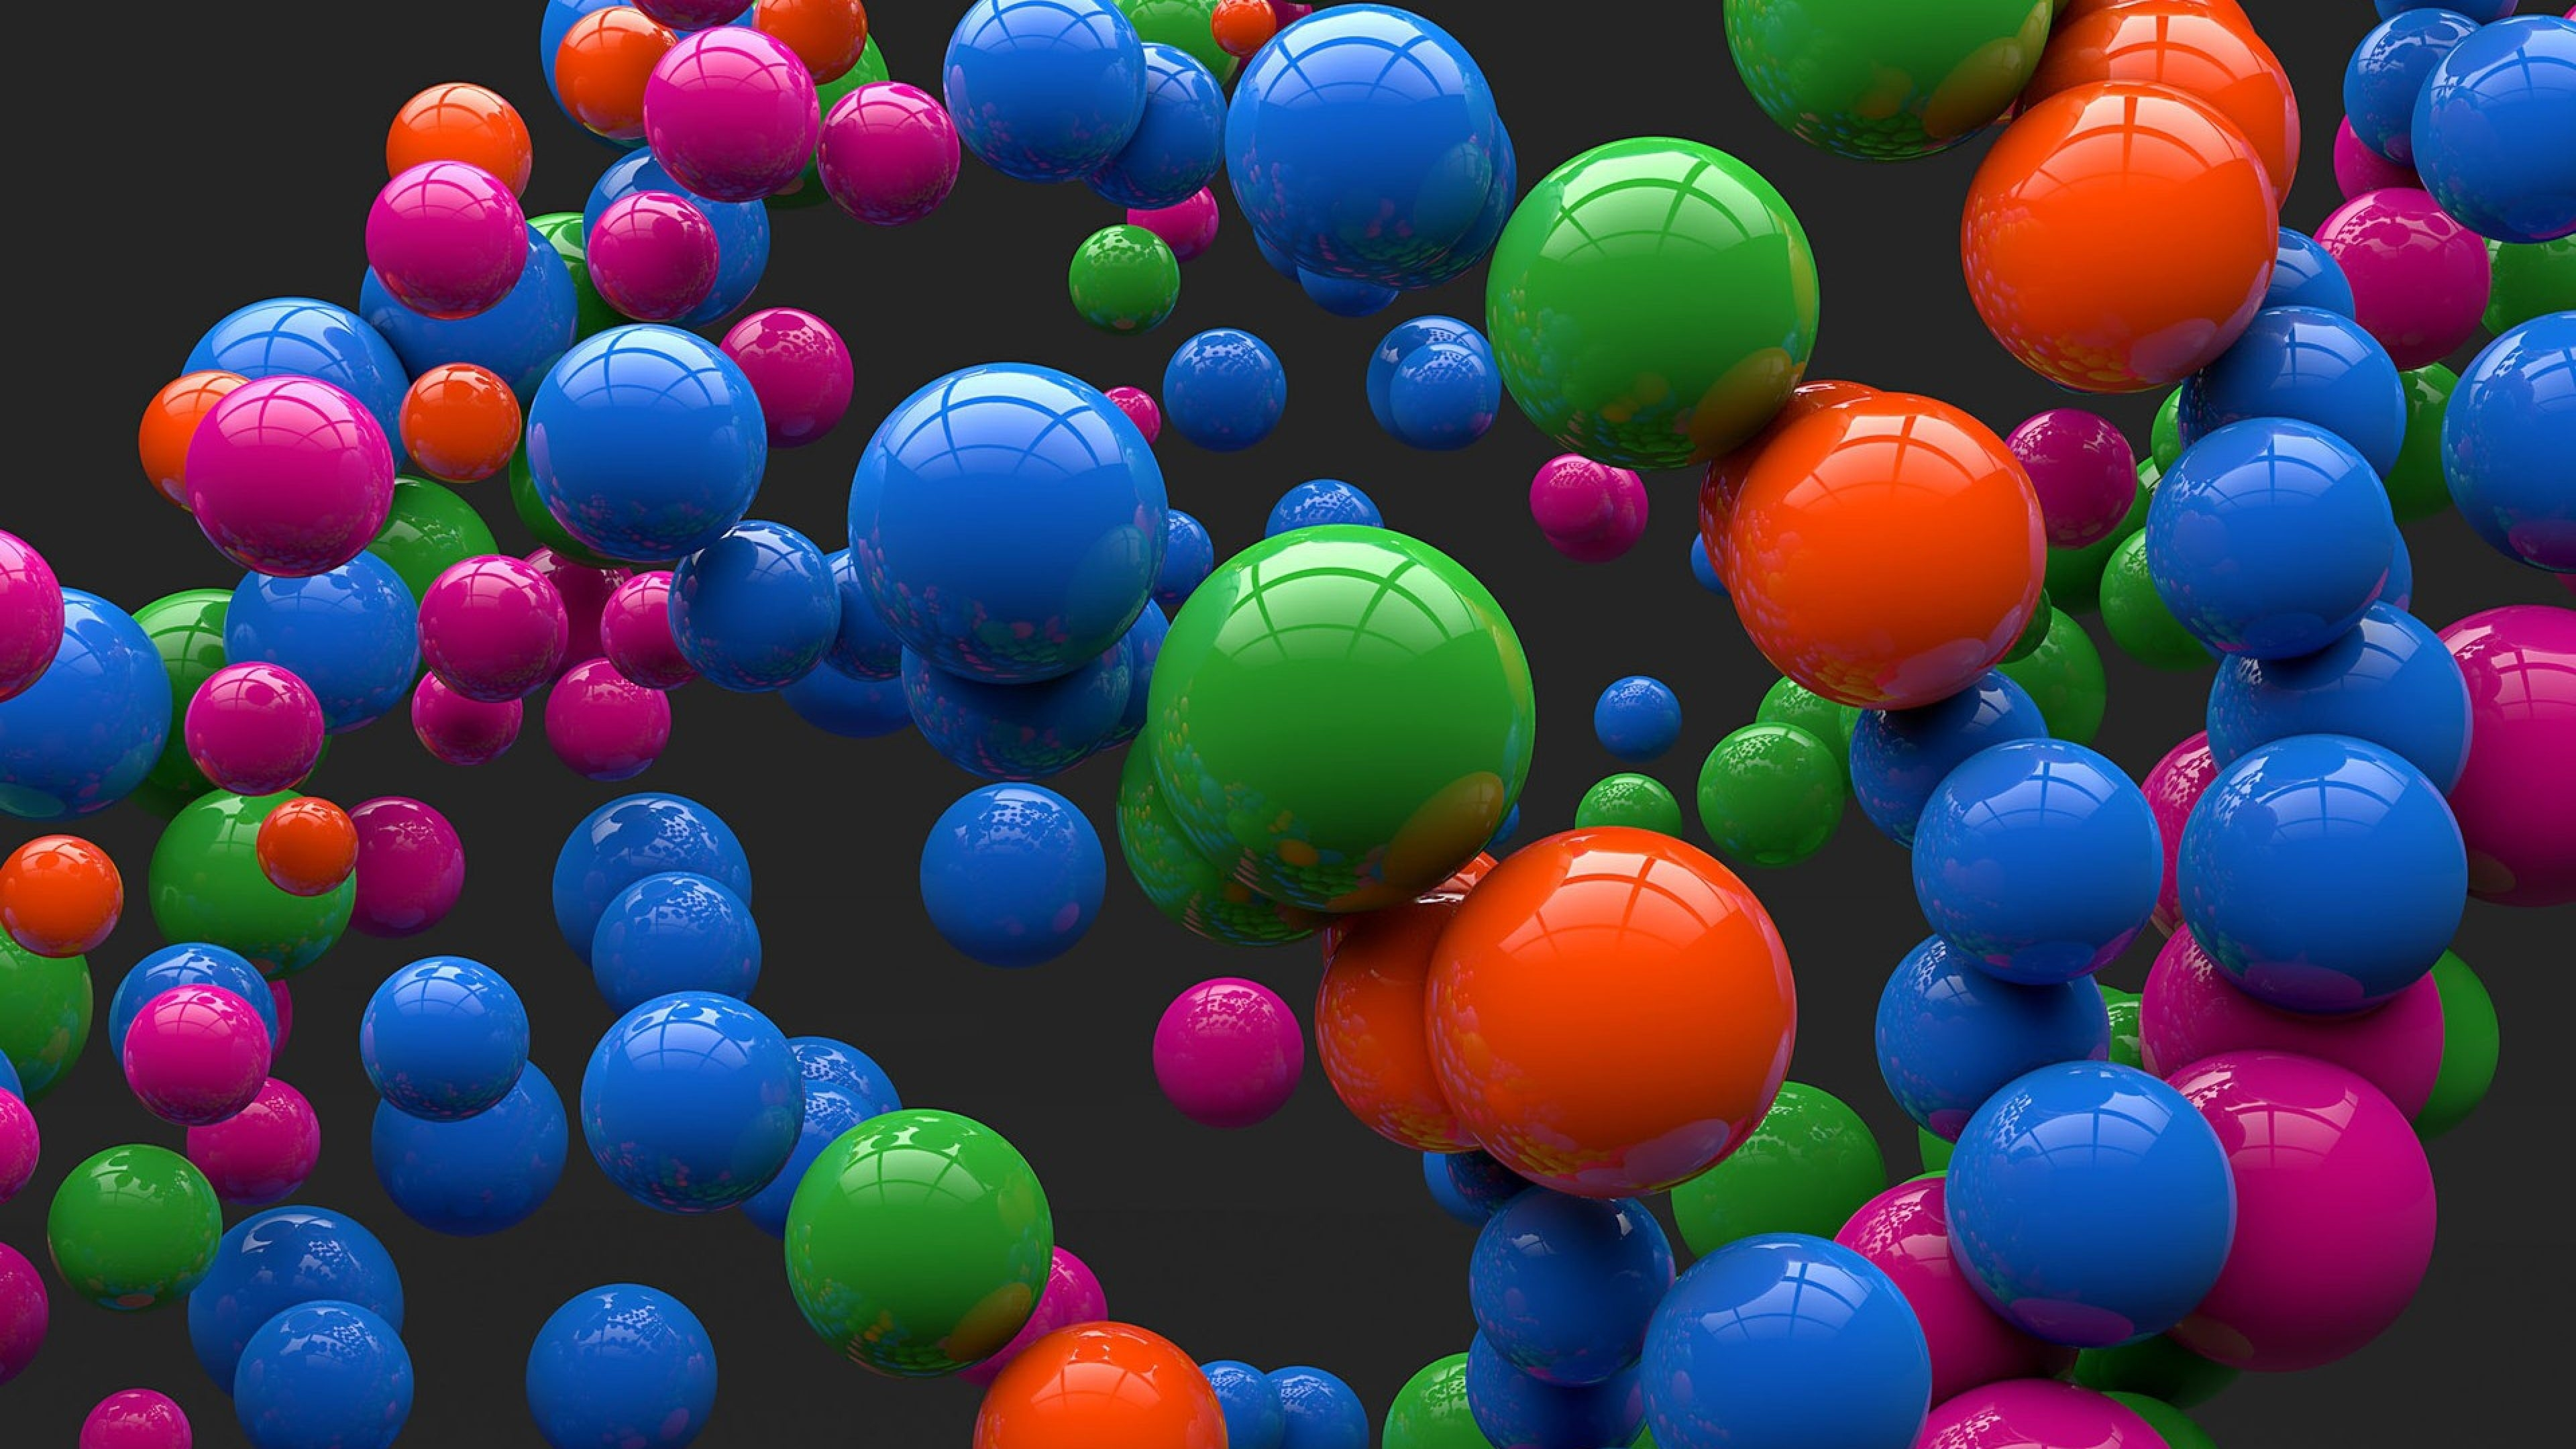 Colorful Balloons Flight Wallpaper